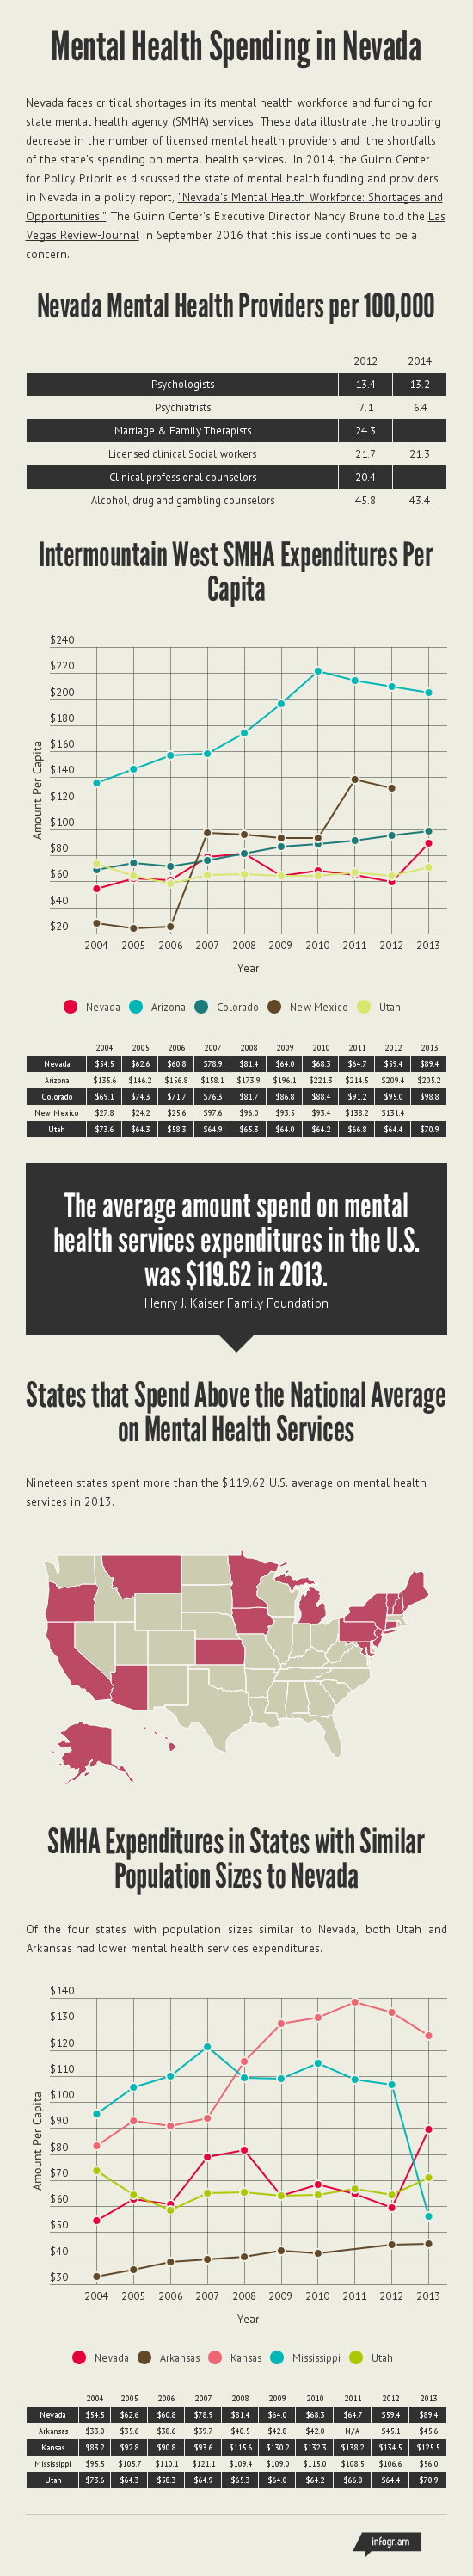 Mental Health Spending in Nevada